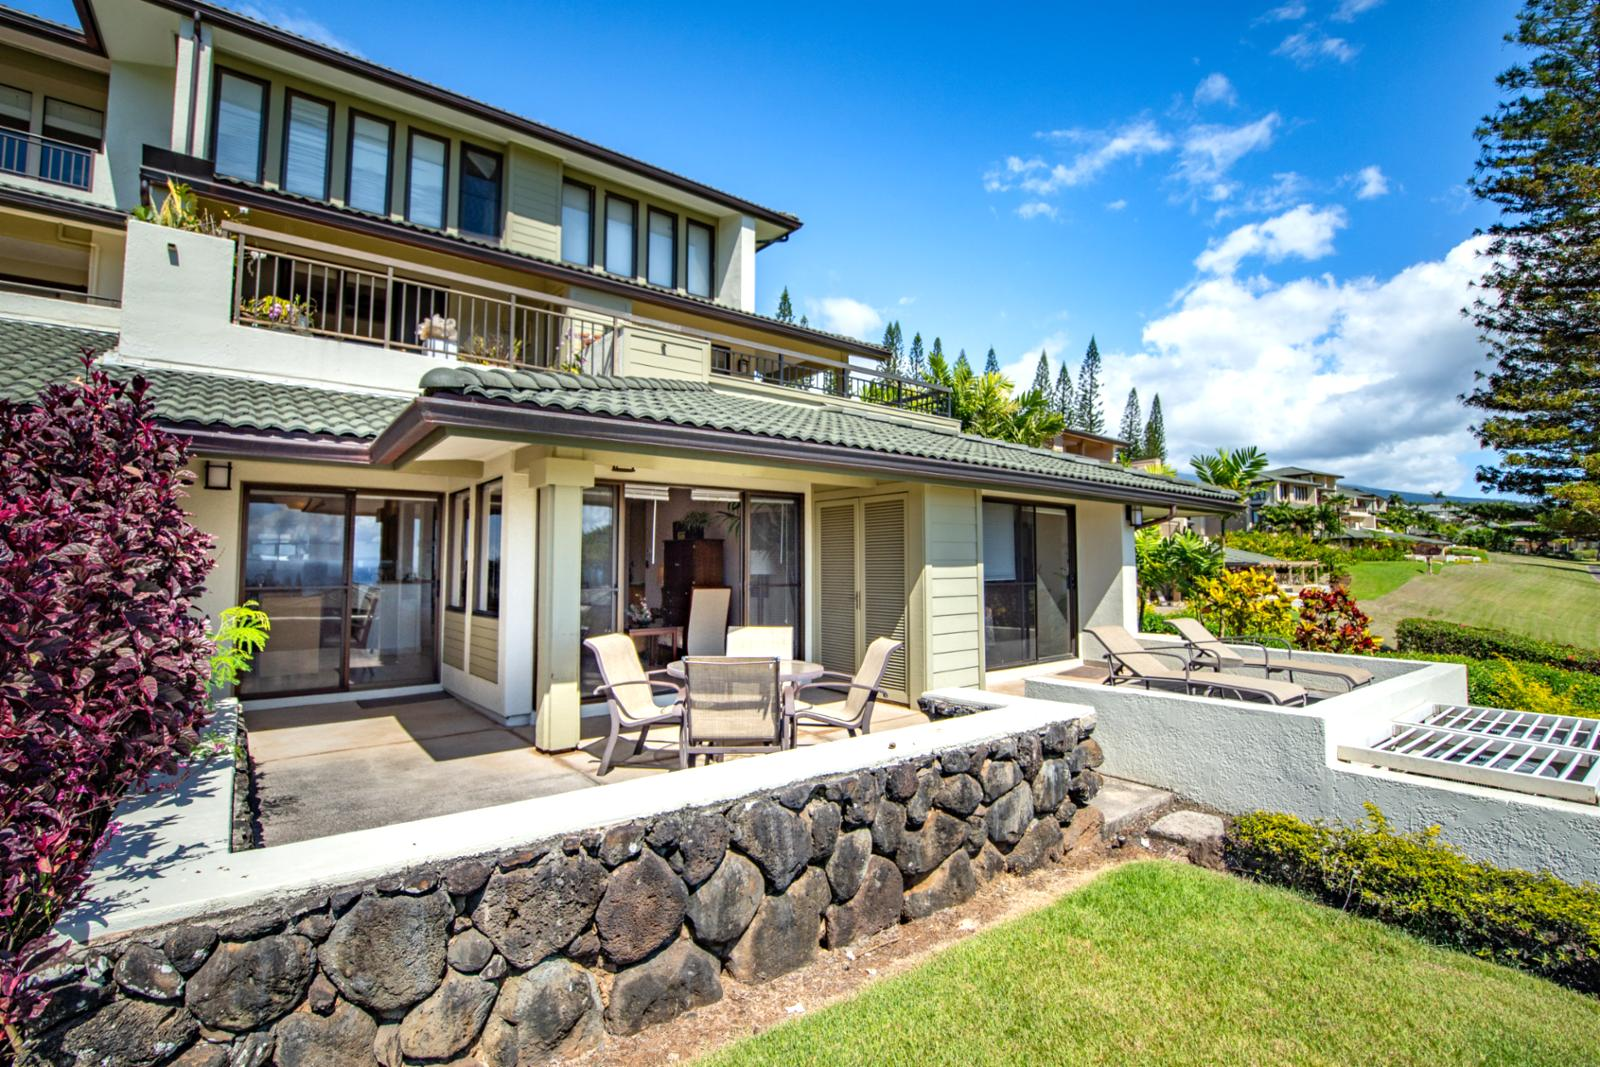 View of the entrance of your Maui getaway!